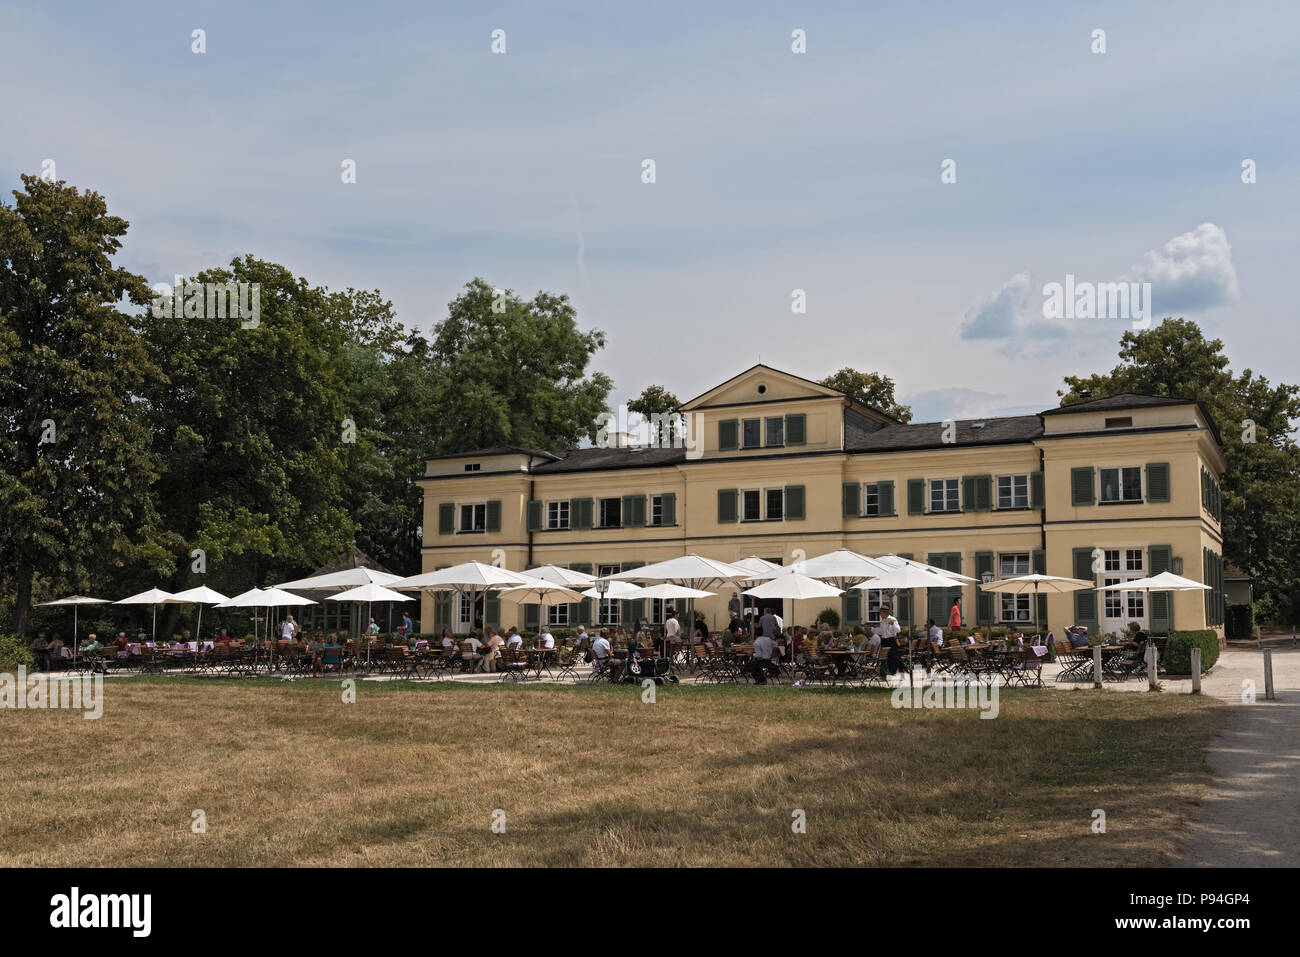 guests on the terrace in front of the restaurant in the historic park Schoenbusch, Aschaffenburg, Germany. - Stock Image